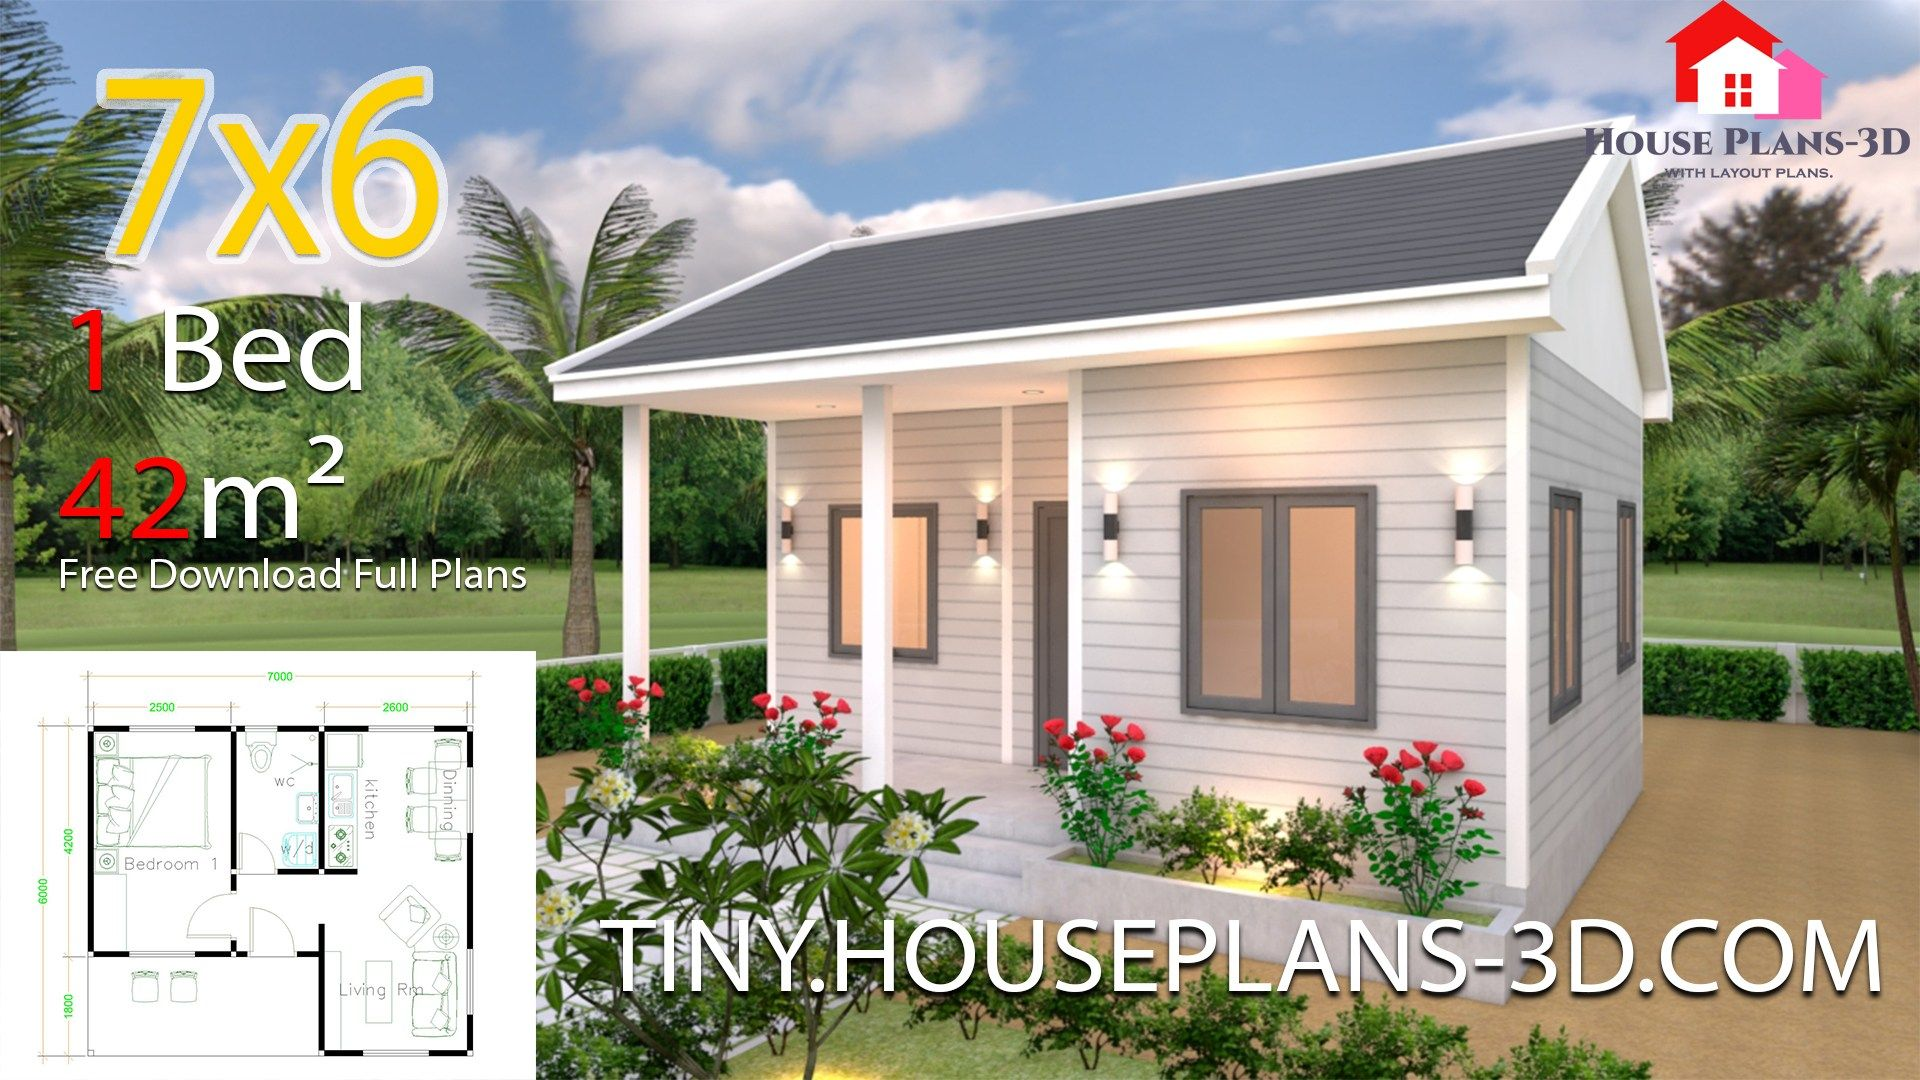 Tiny House Plans 7x6 With One Bedroom Gable Roofthe House Has Car Parking And Garden Living Small House Design Plans One Bedroom House Plans One Bedroom House